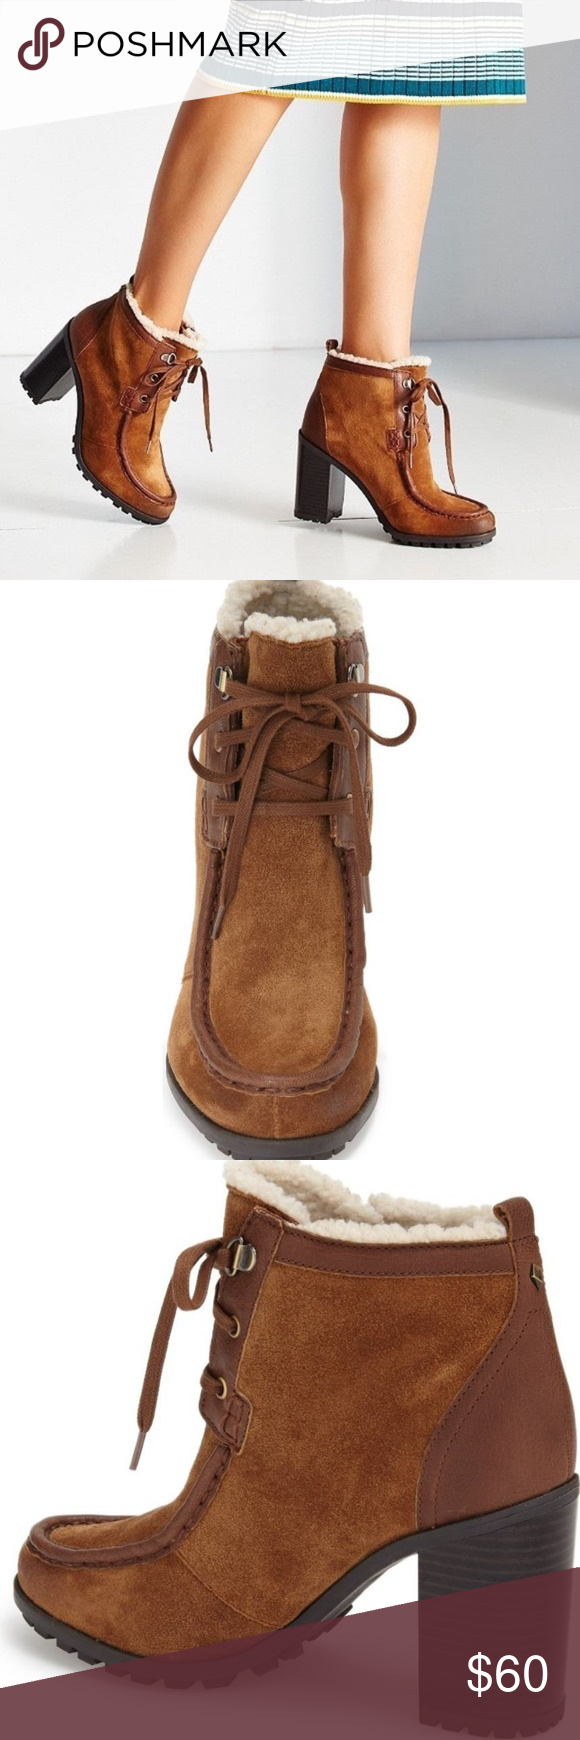 faa7ba82d016a9 Sam Edelman Madge Tan Suede Bootie 7.5 New Beautiful Tan suede with faux fur  lining bootie